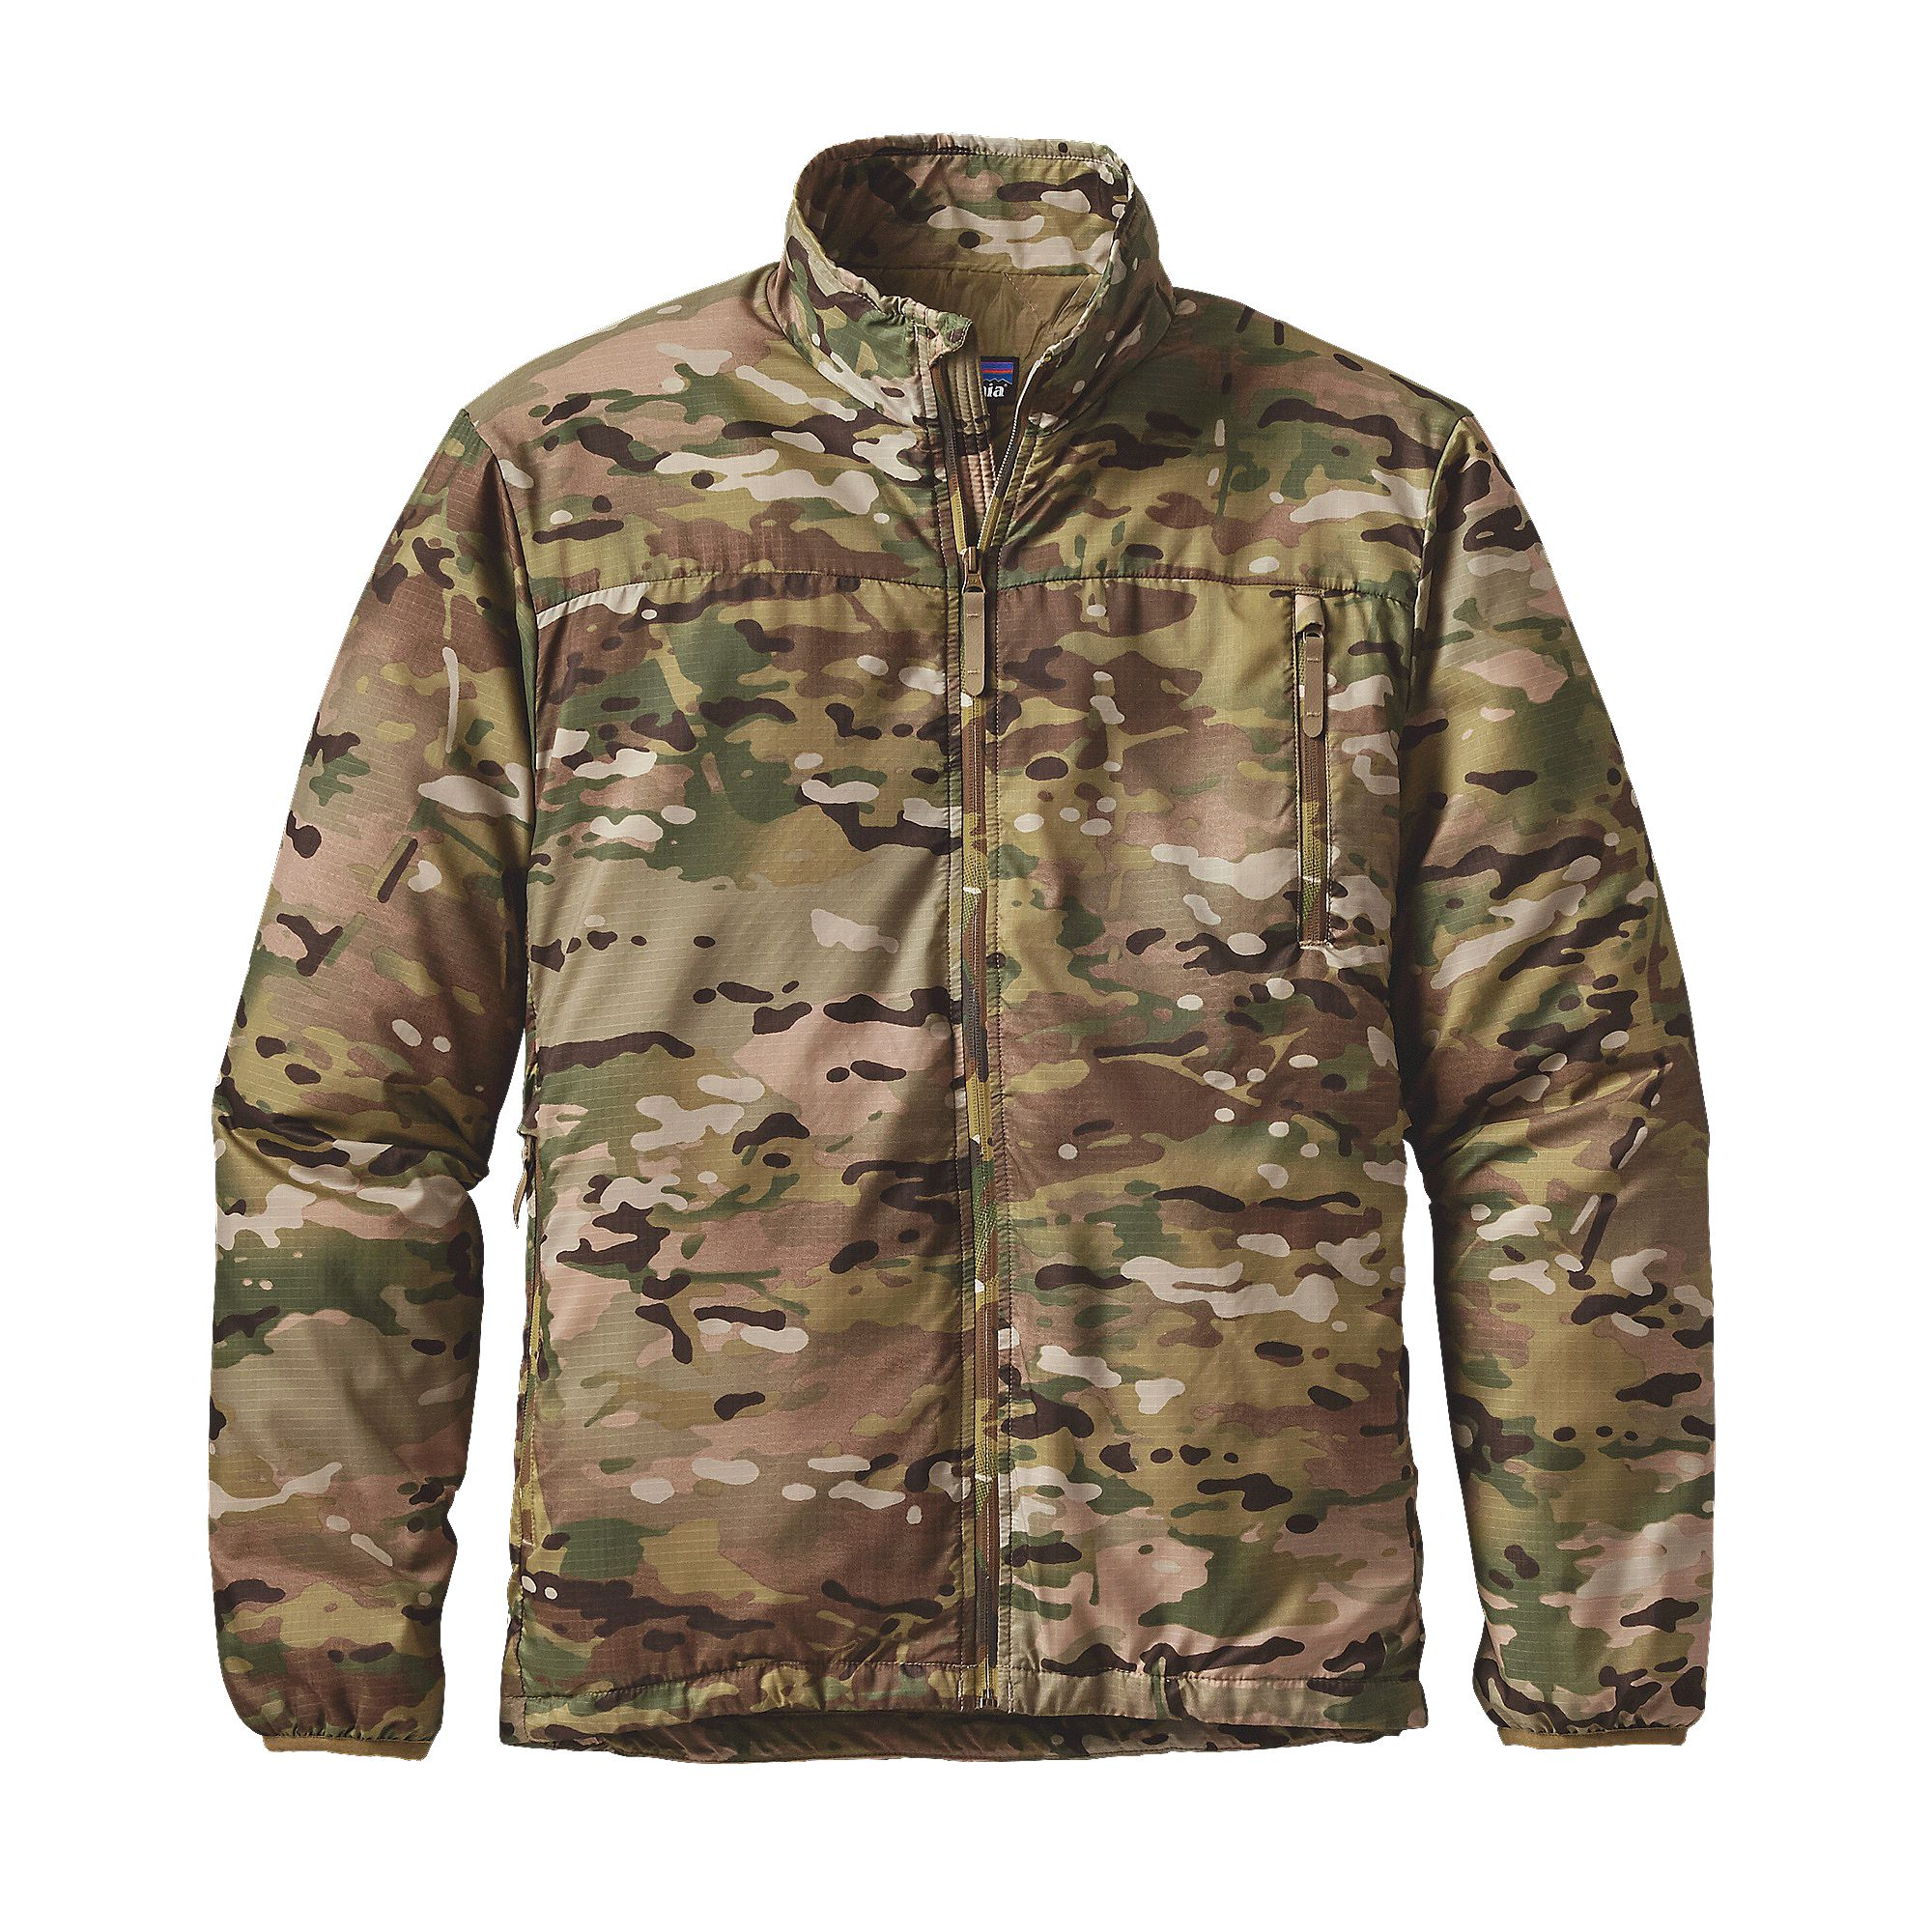 Patagonia Level 3A Jacket